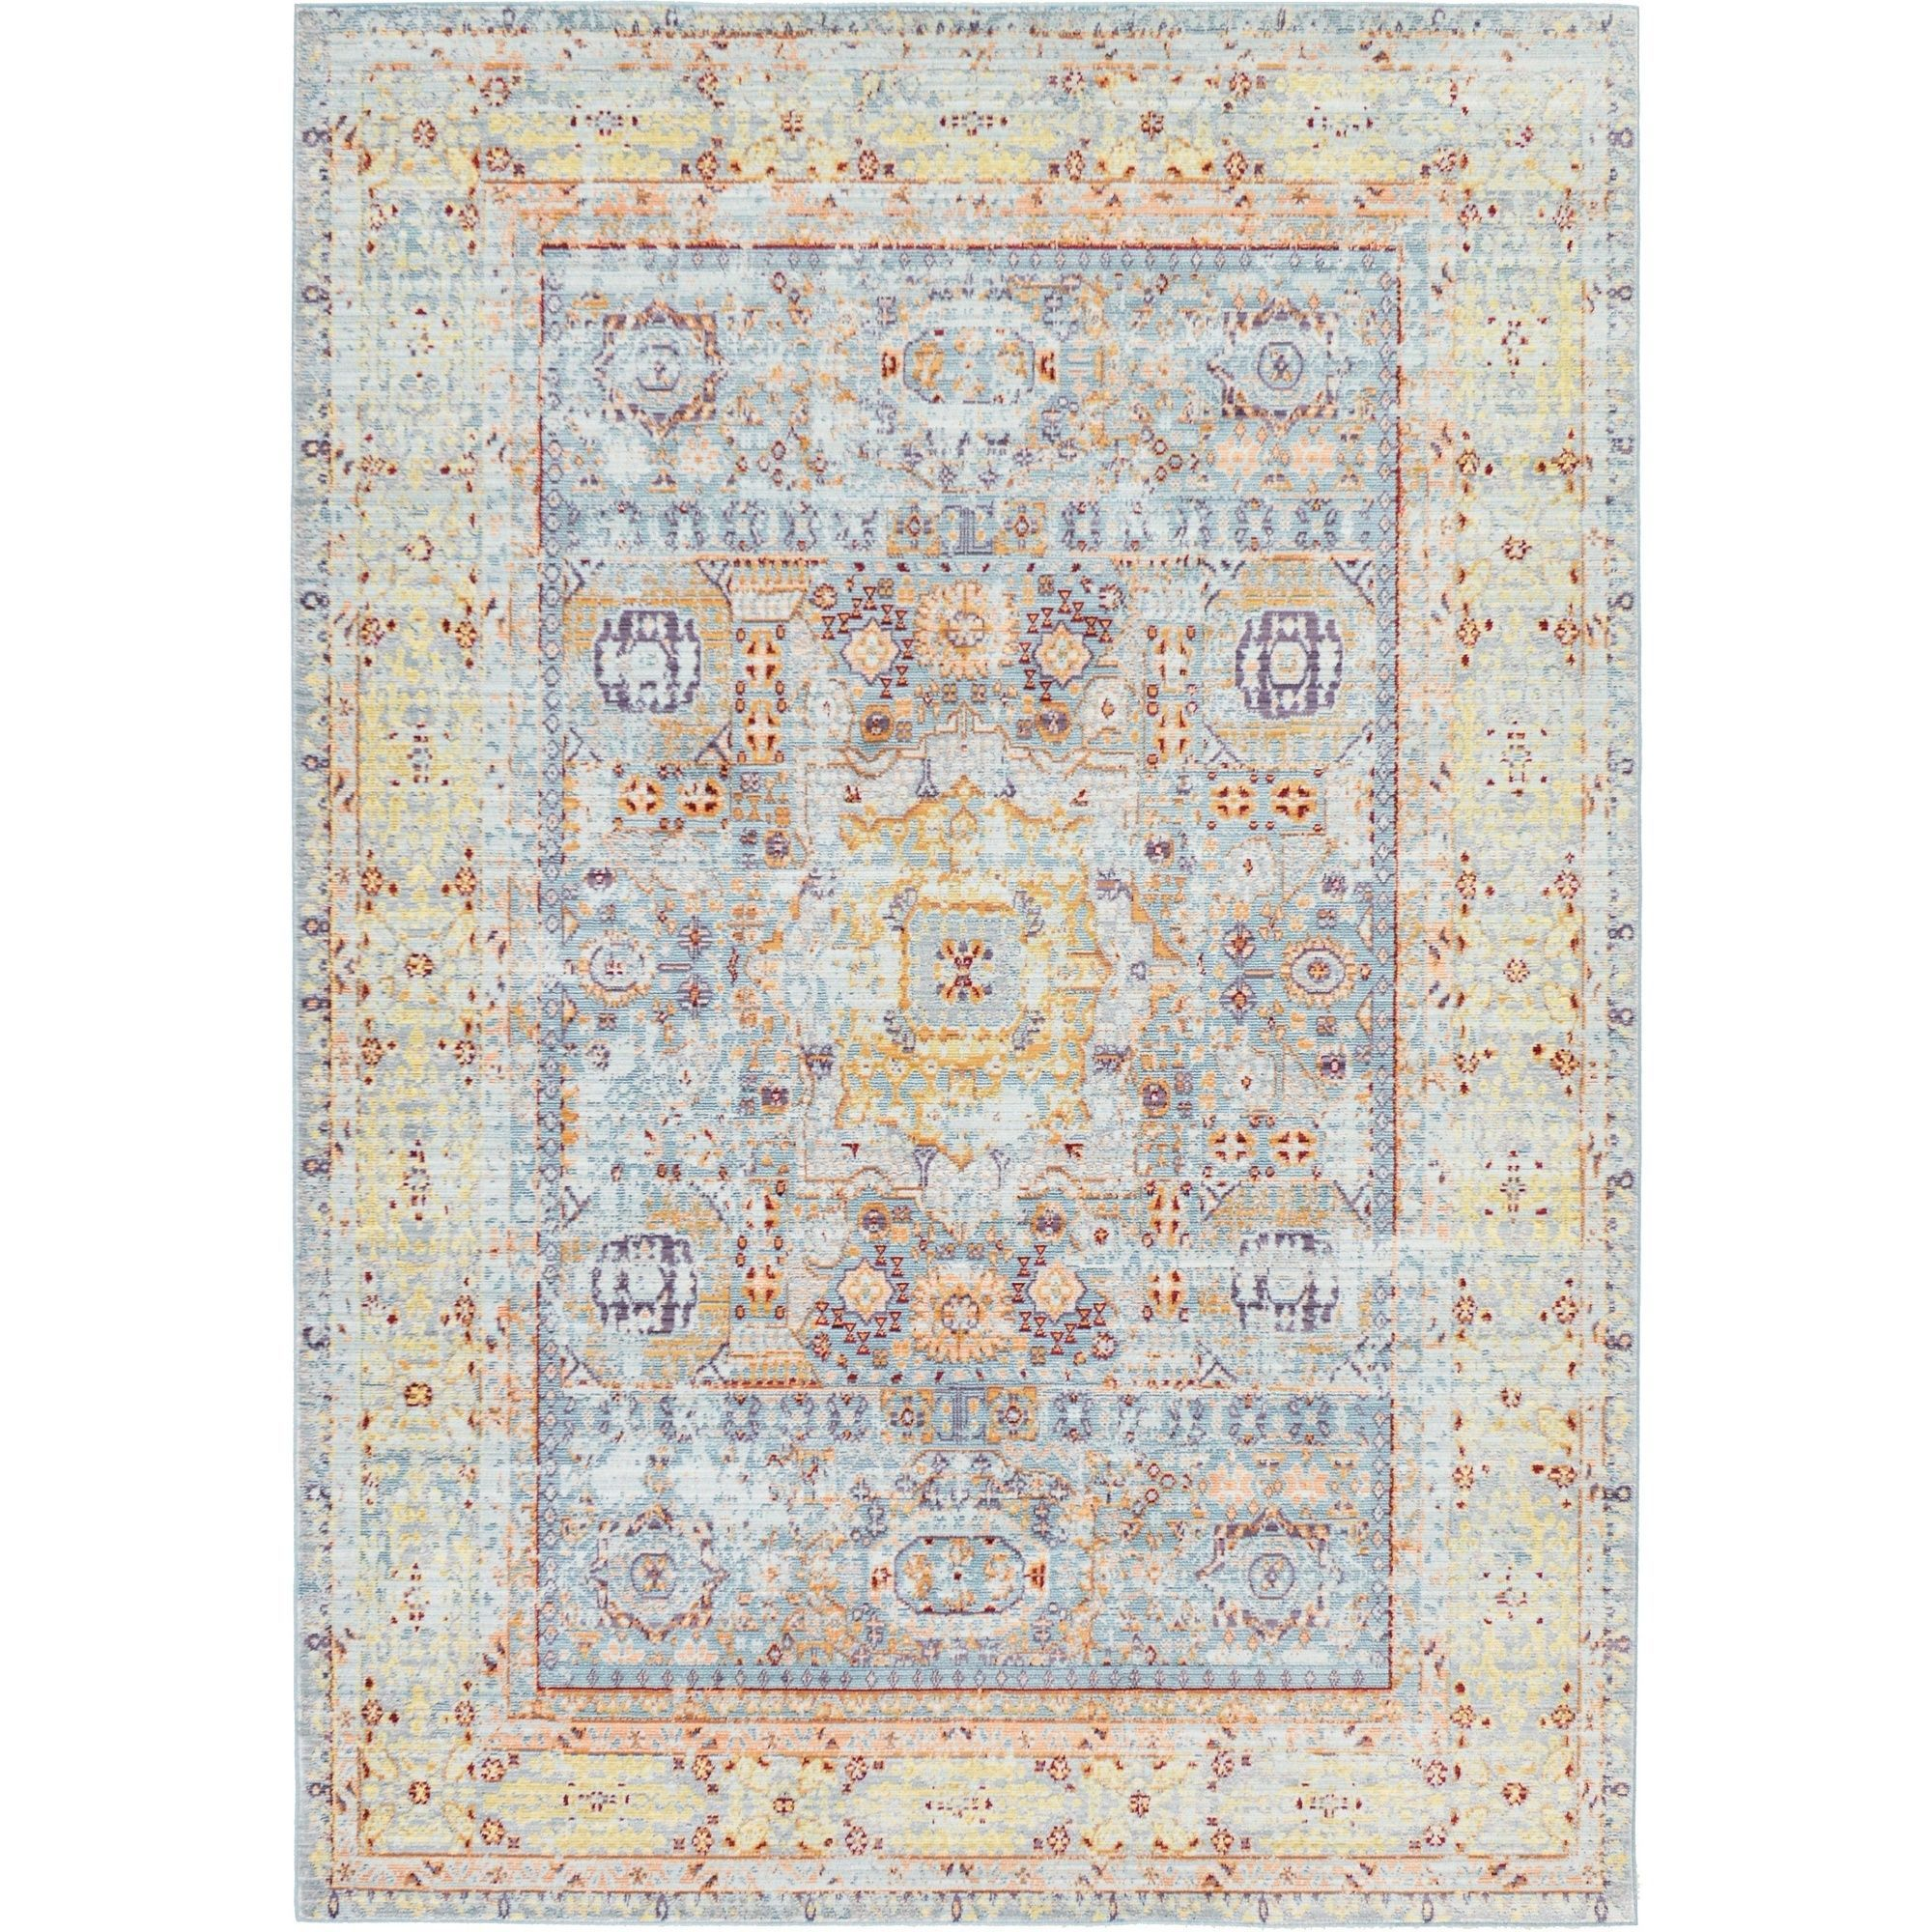 Blue Red 150 250 6 X 9 5x8 6x9 Rugs Enhance Your